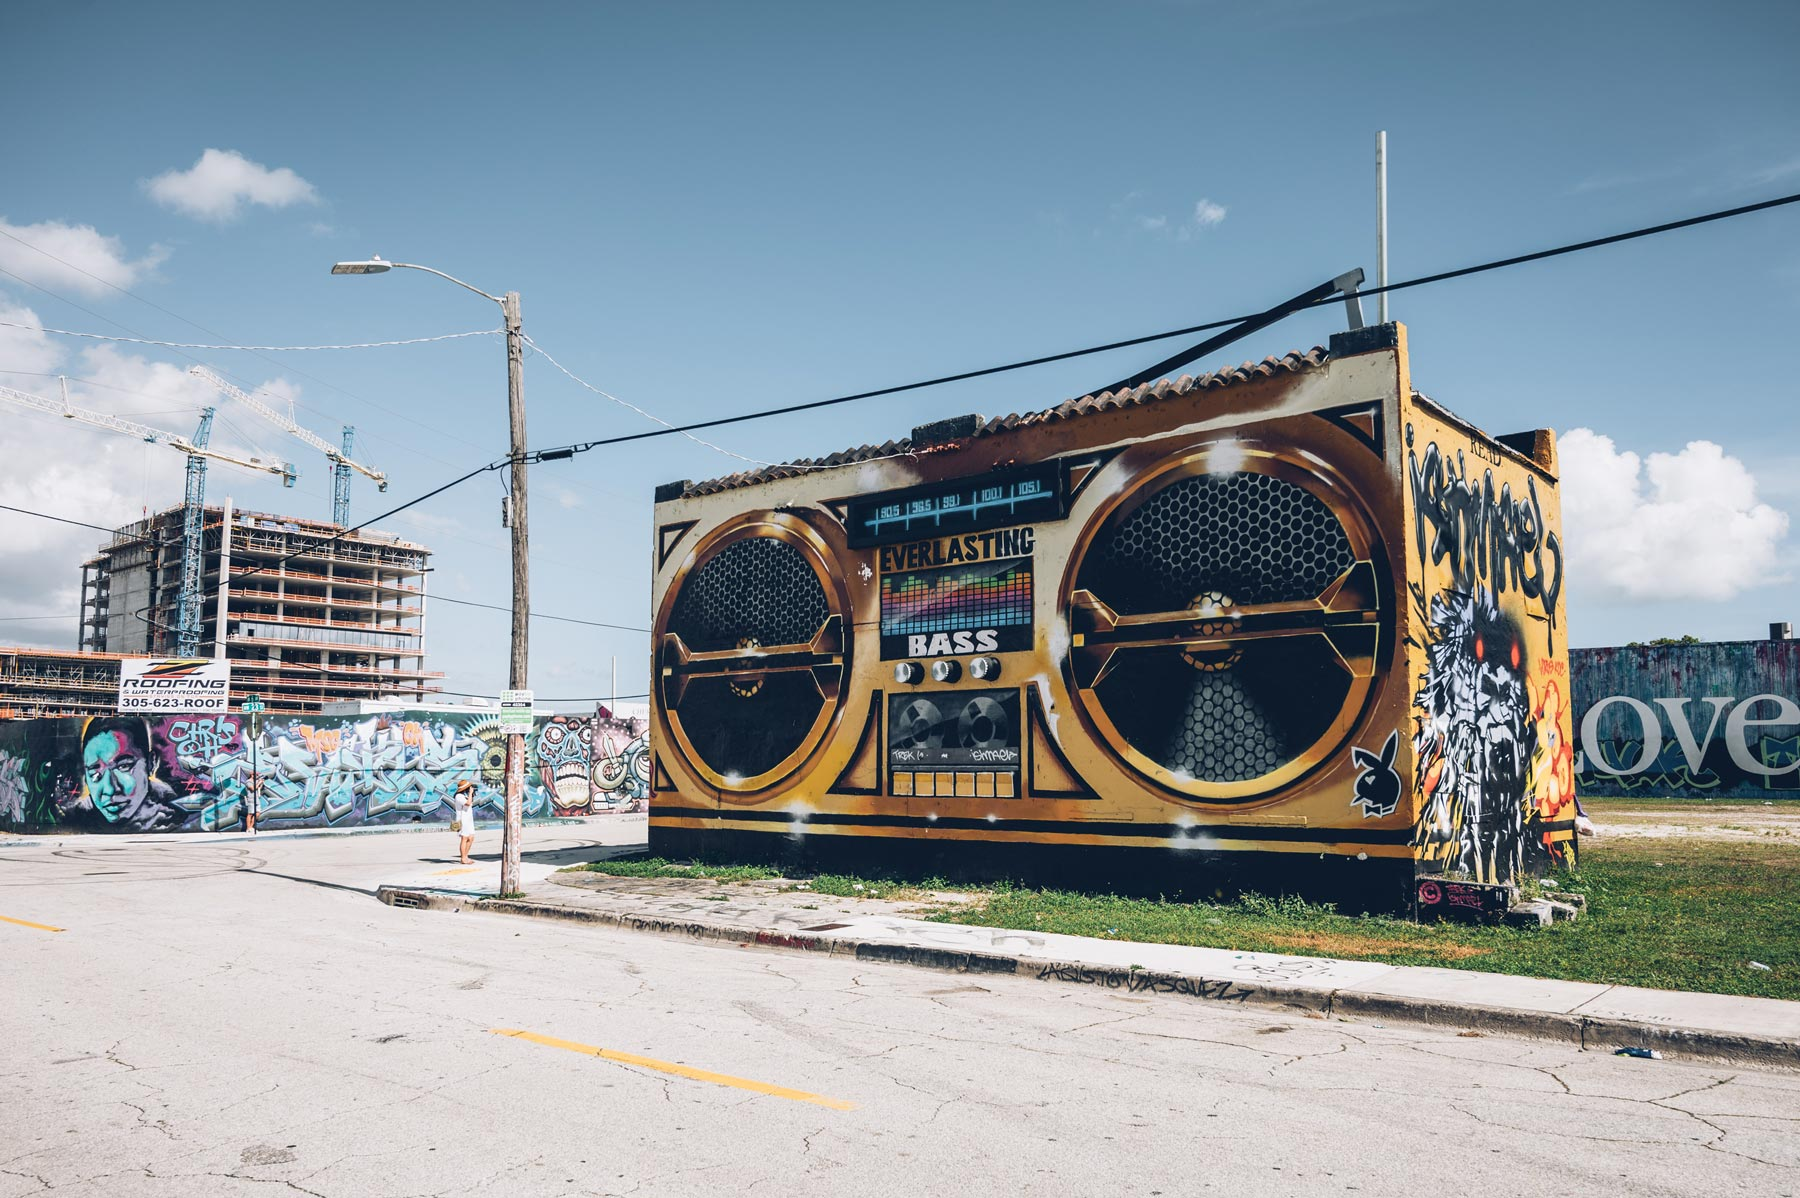 Enceinte, Street Art Miami, Wynwood